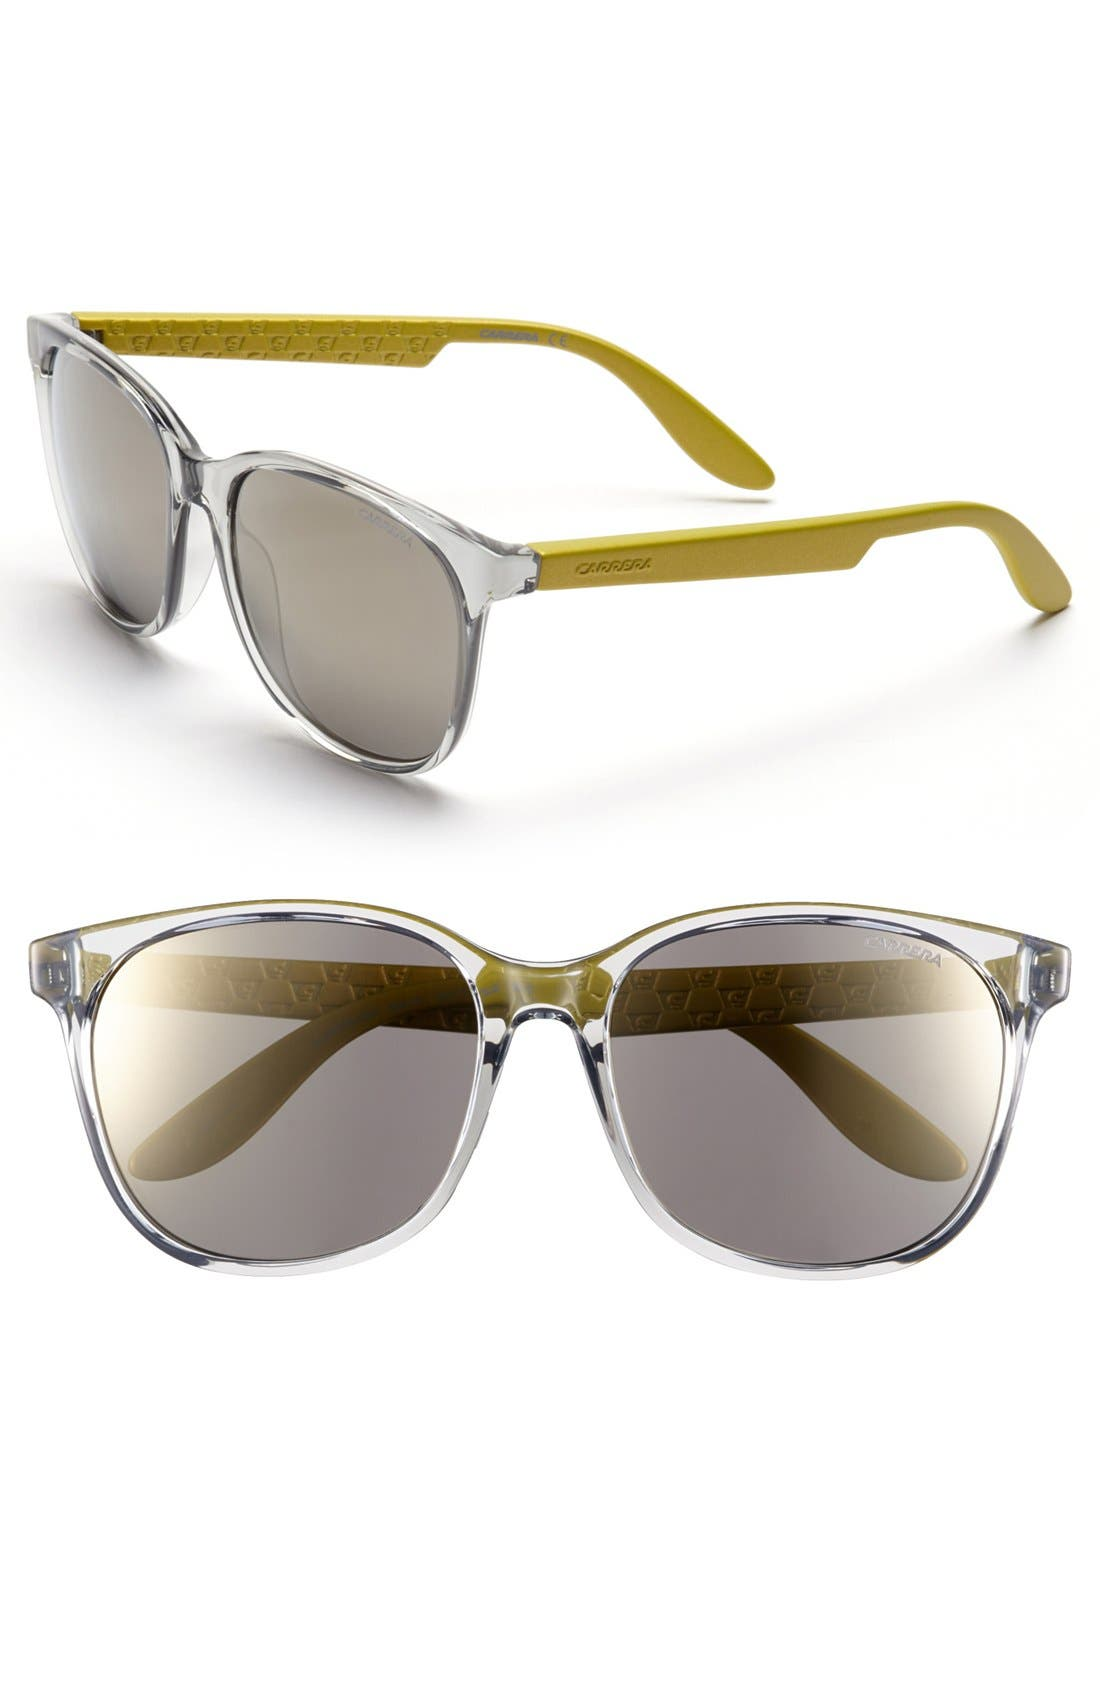 Alternate Image 1 Selected - Carrera Eyewear 56 mm Sunglasses